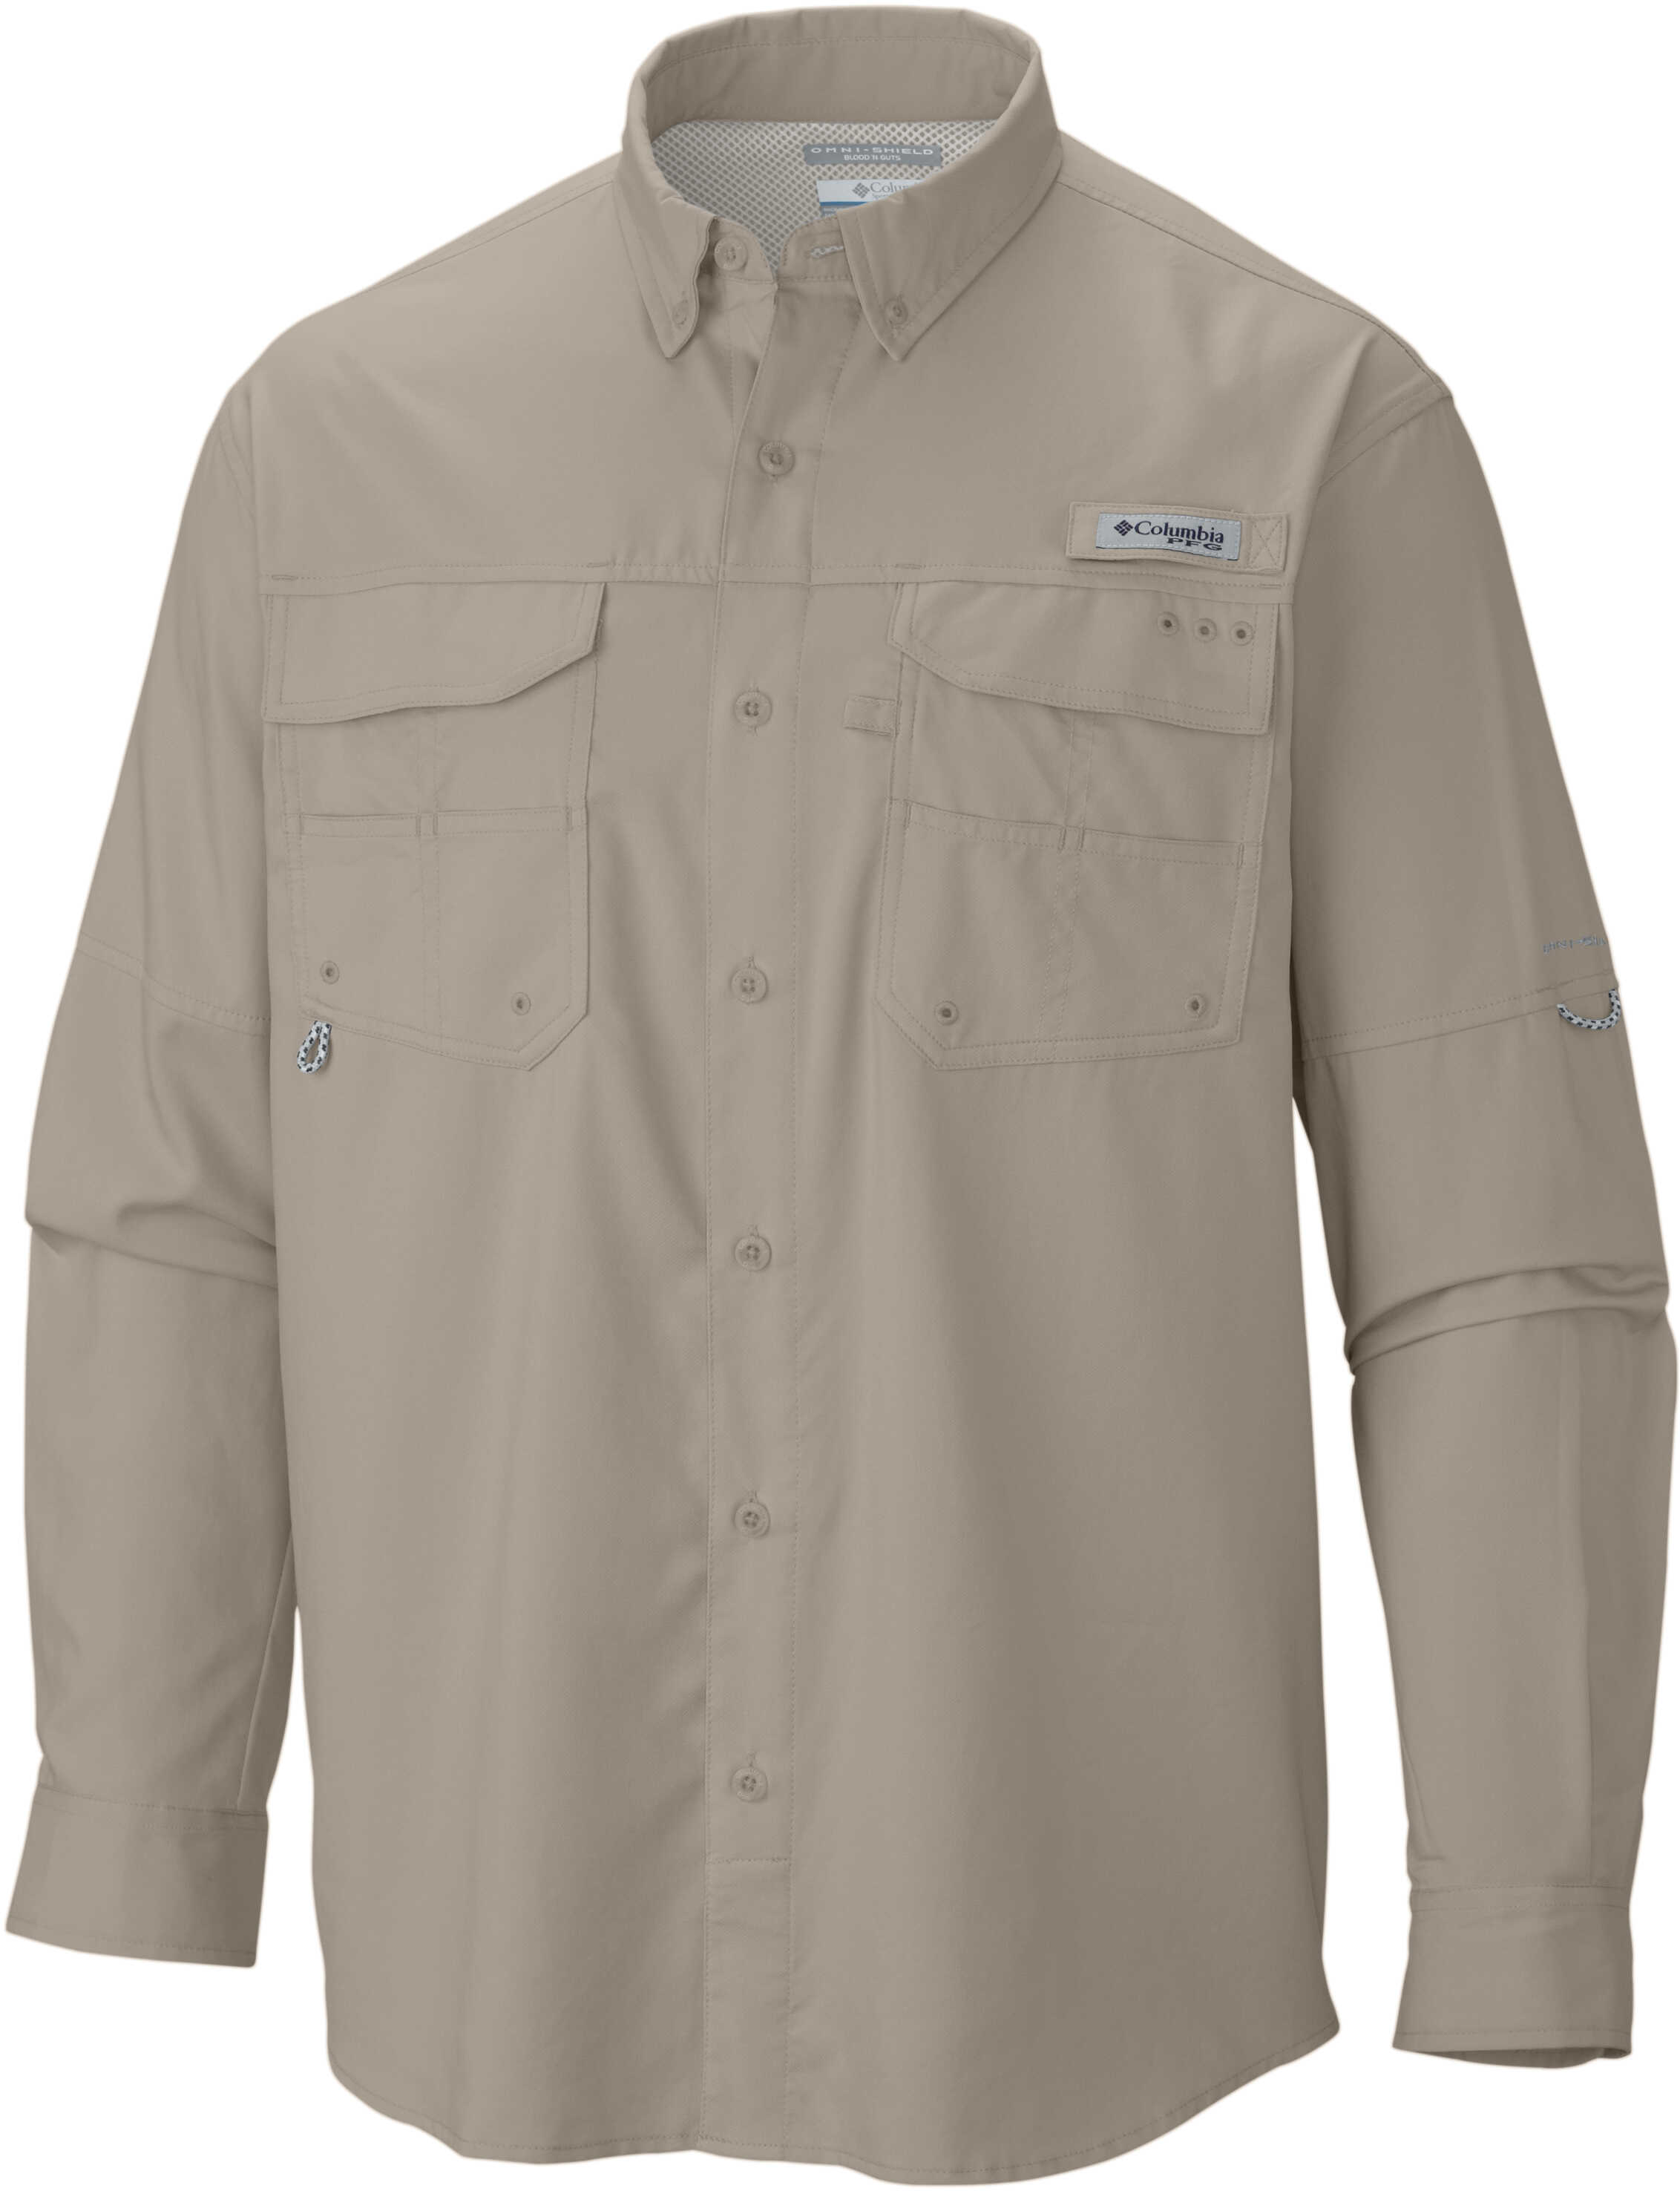 Columbia Blood and Guts ™ III LS Woven Shirt-Fossil Fossil